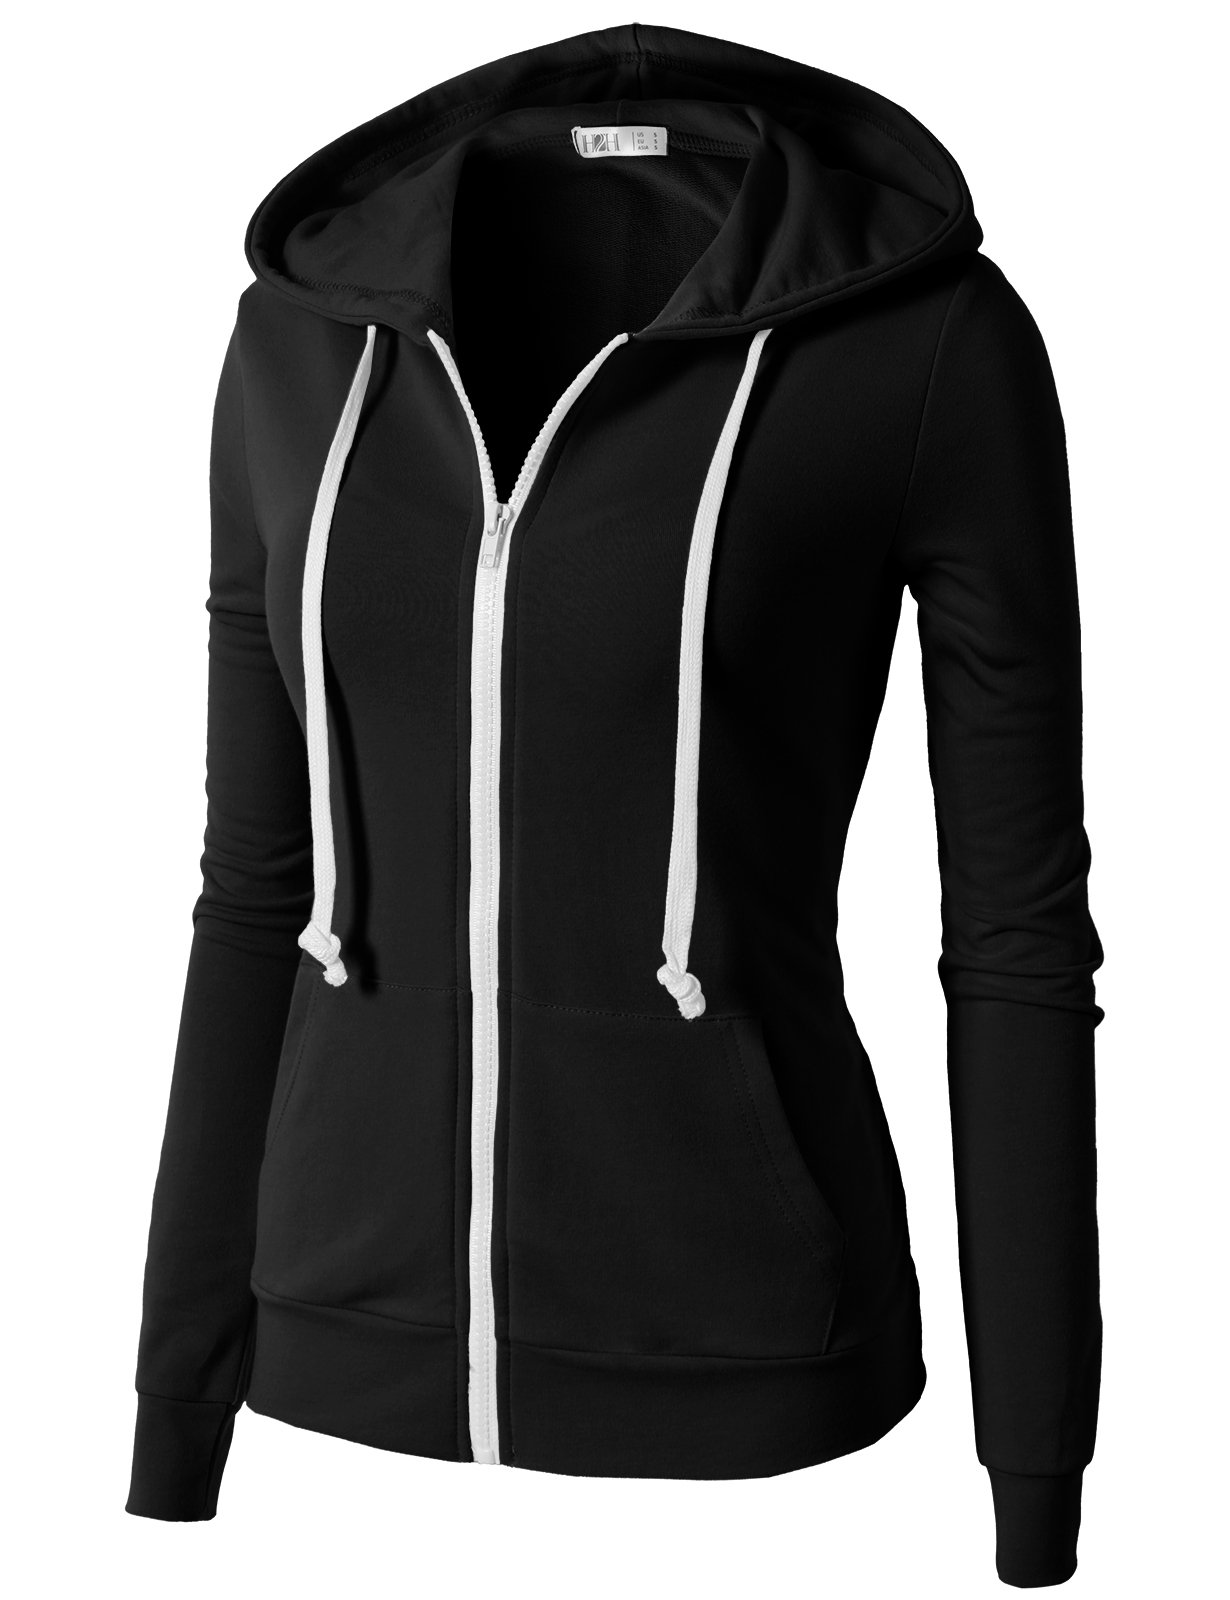 H2H Women's Casual Regular Fit Hoodie Long Sleeve Comfortable Lightweight